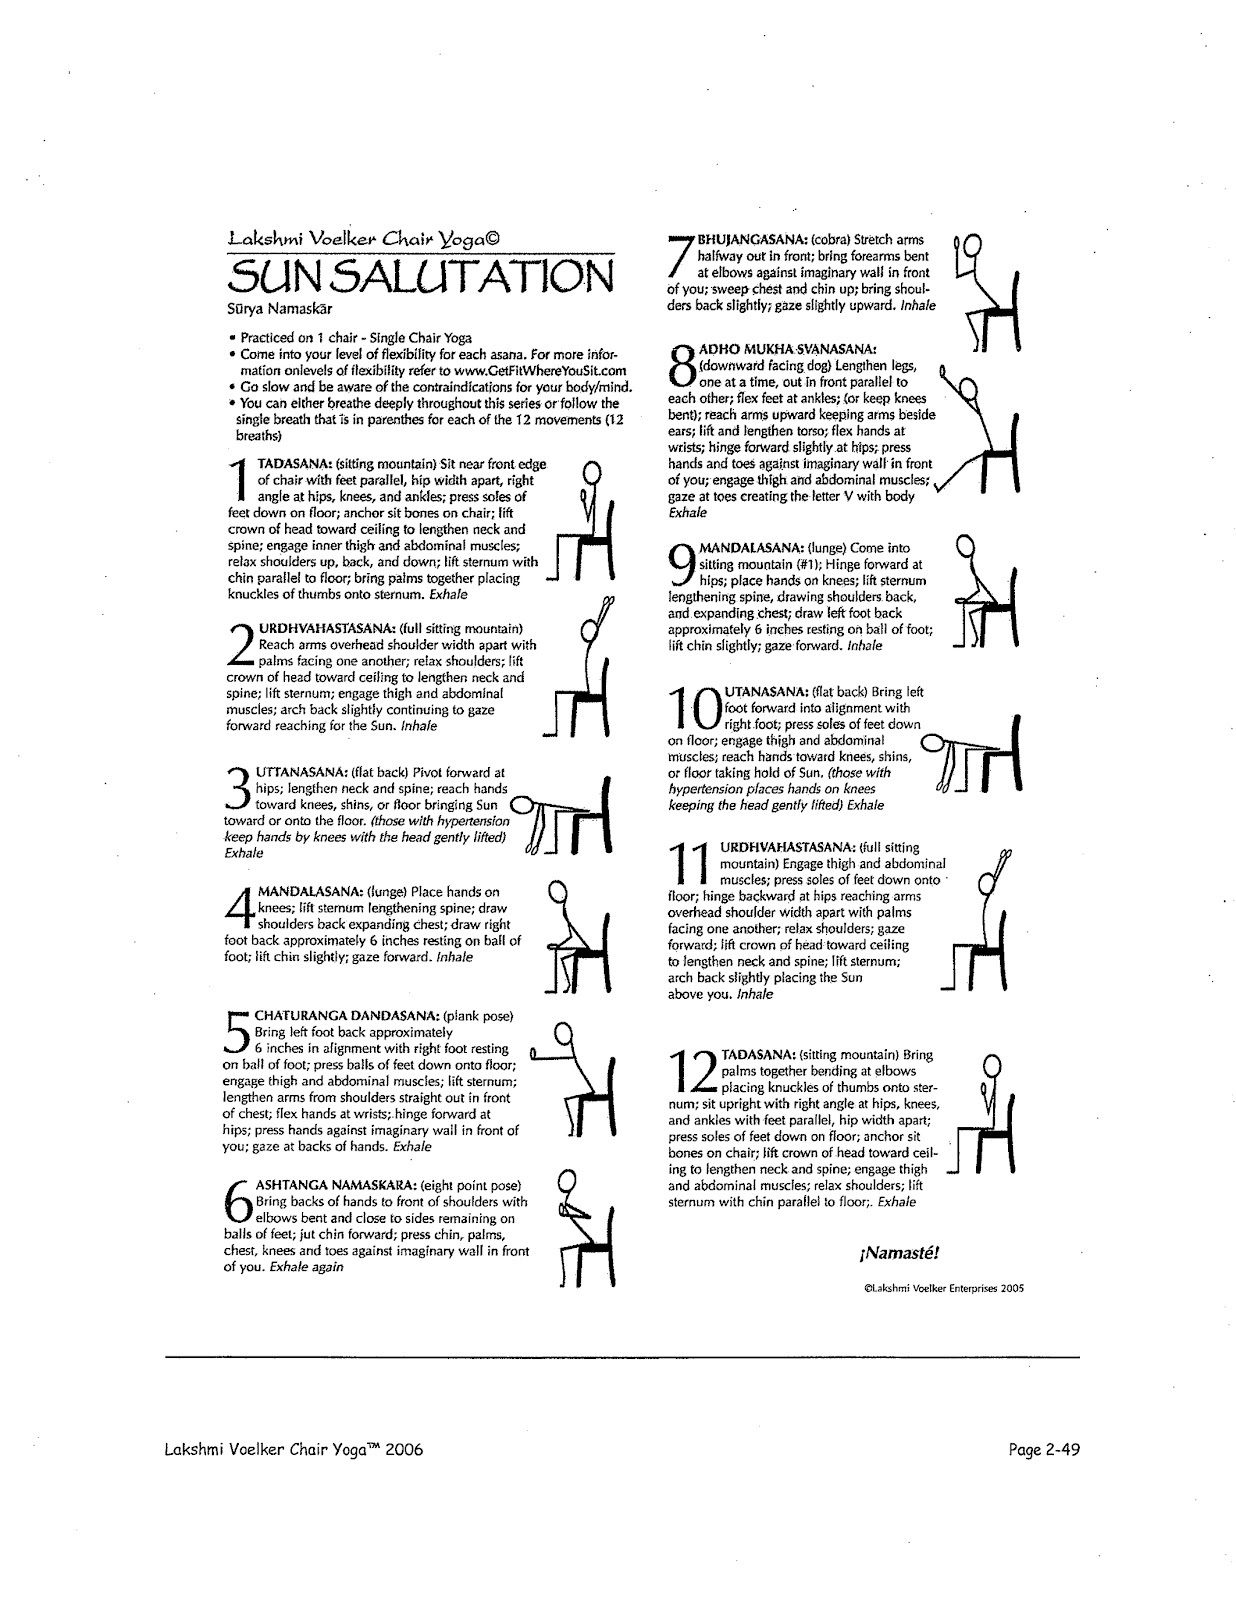 yoga chair exercises for seniors wicker sale 9 best images of printable exercise routines - free ball chart, senior ...